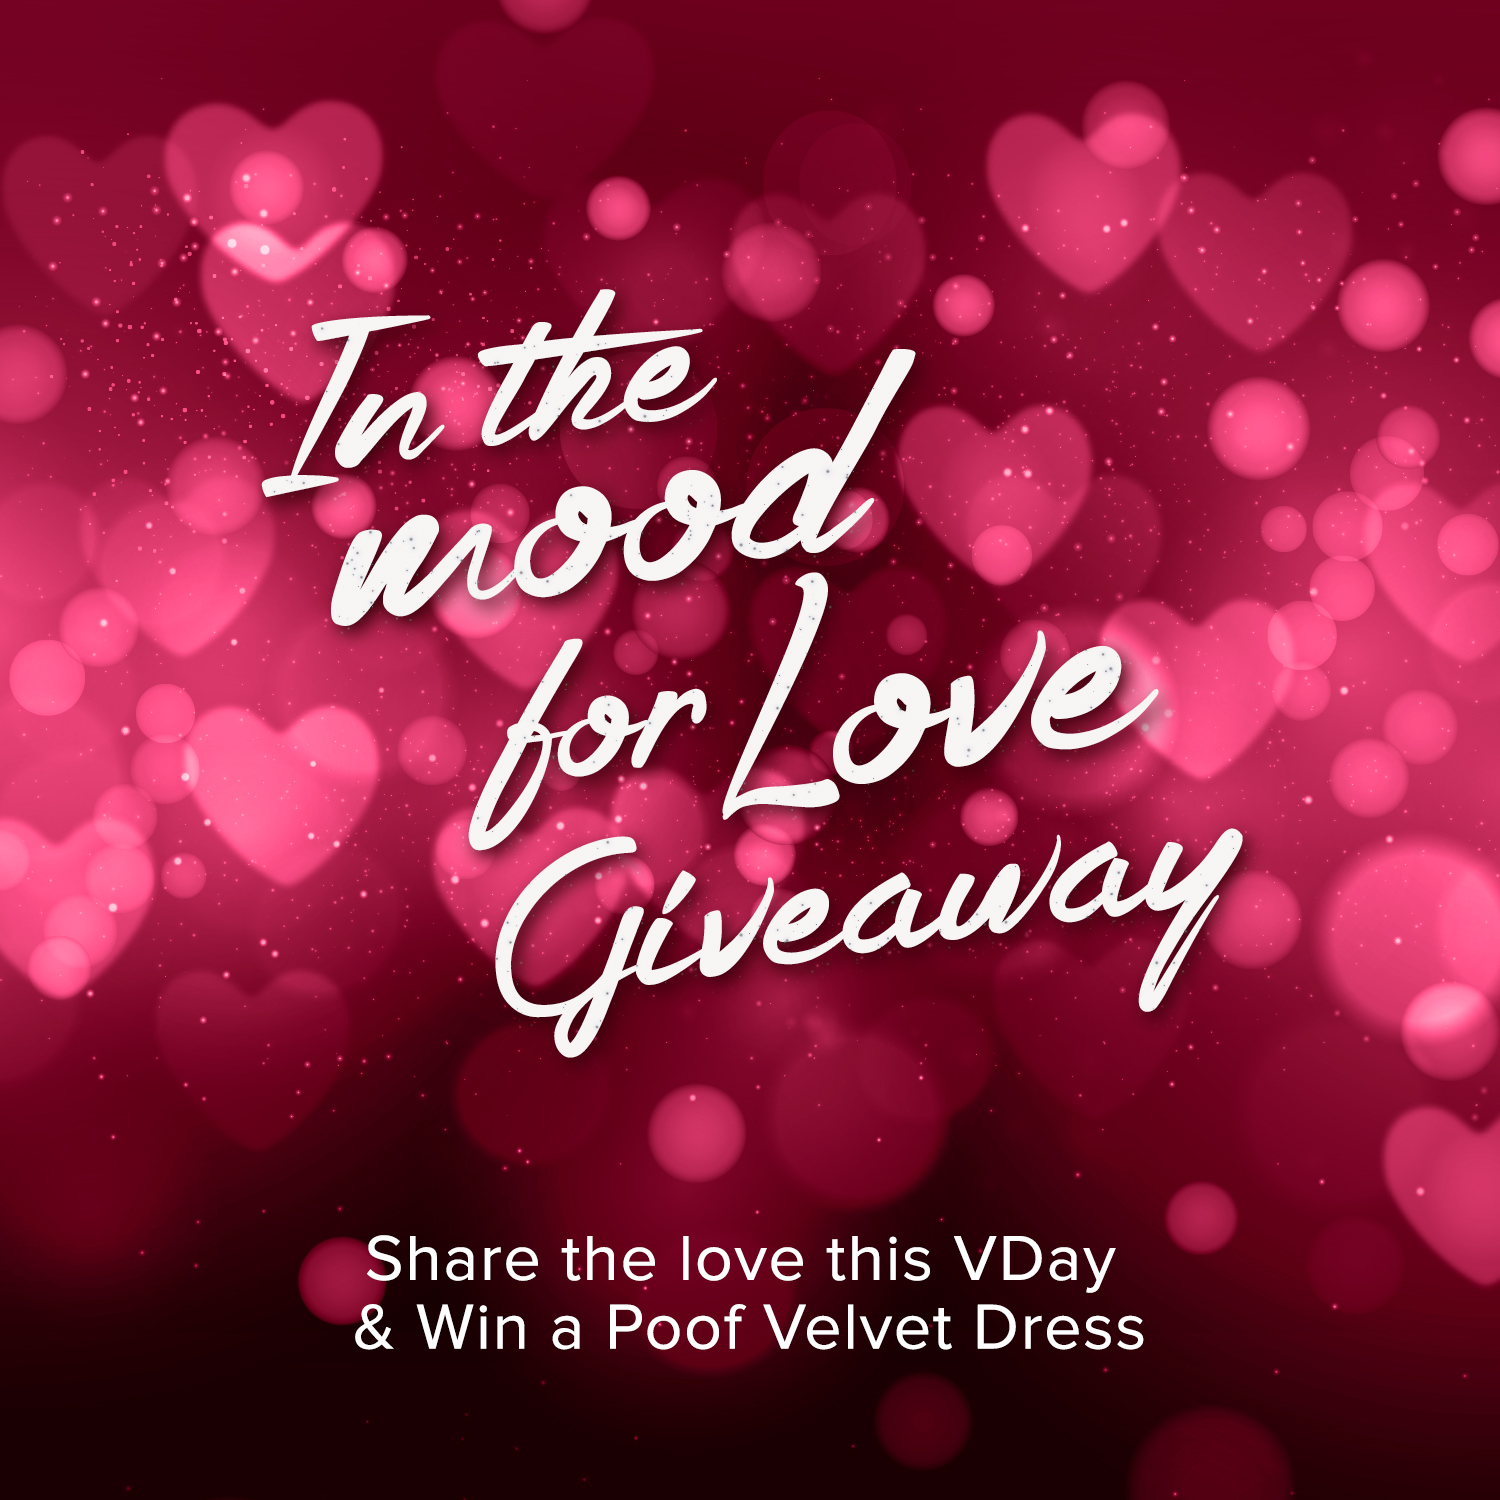 In the Mood for Love Giveaway